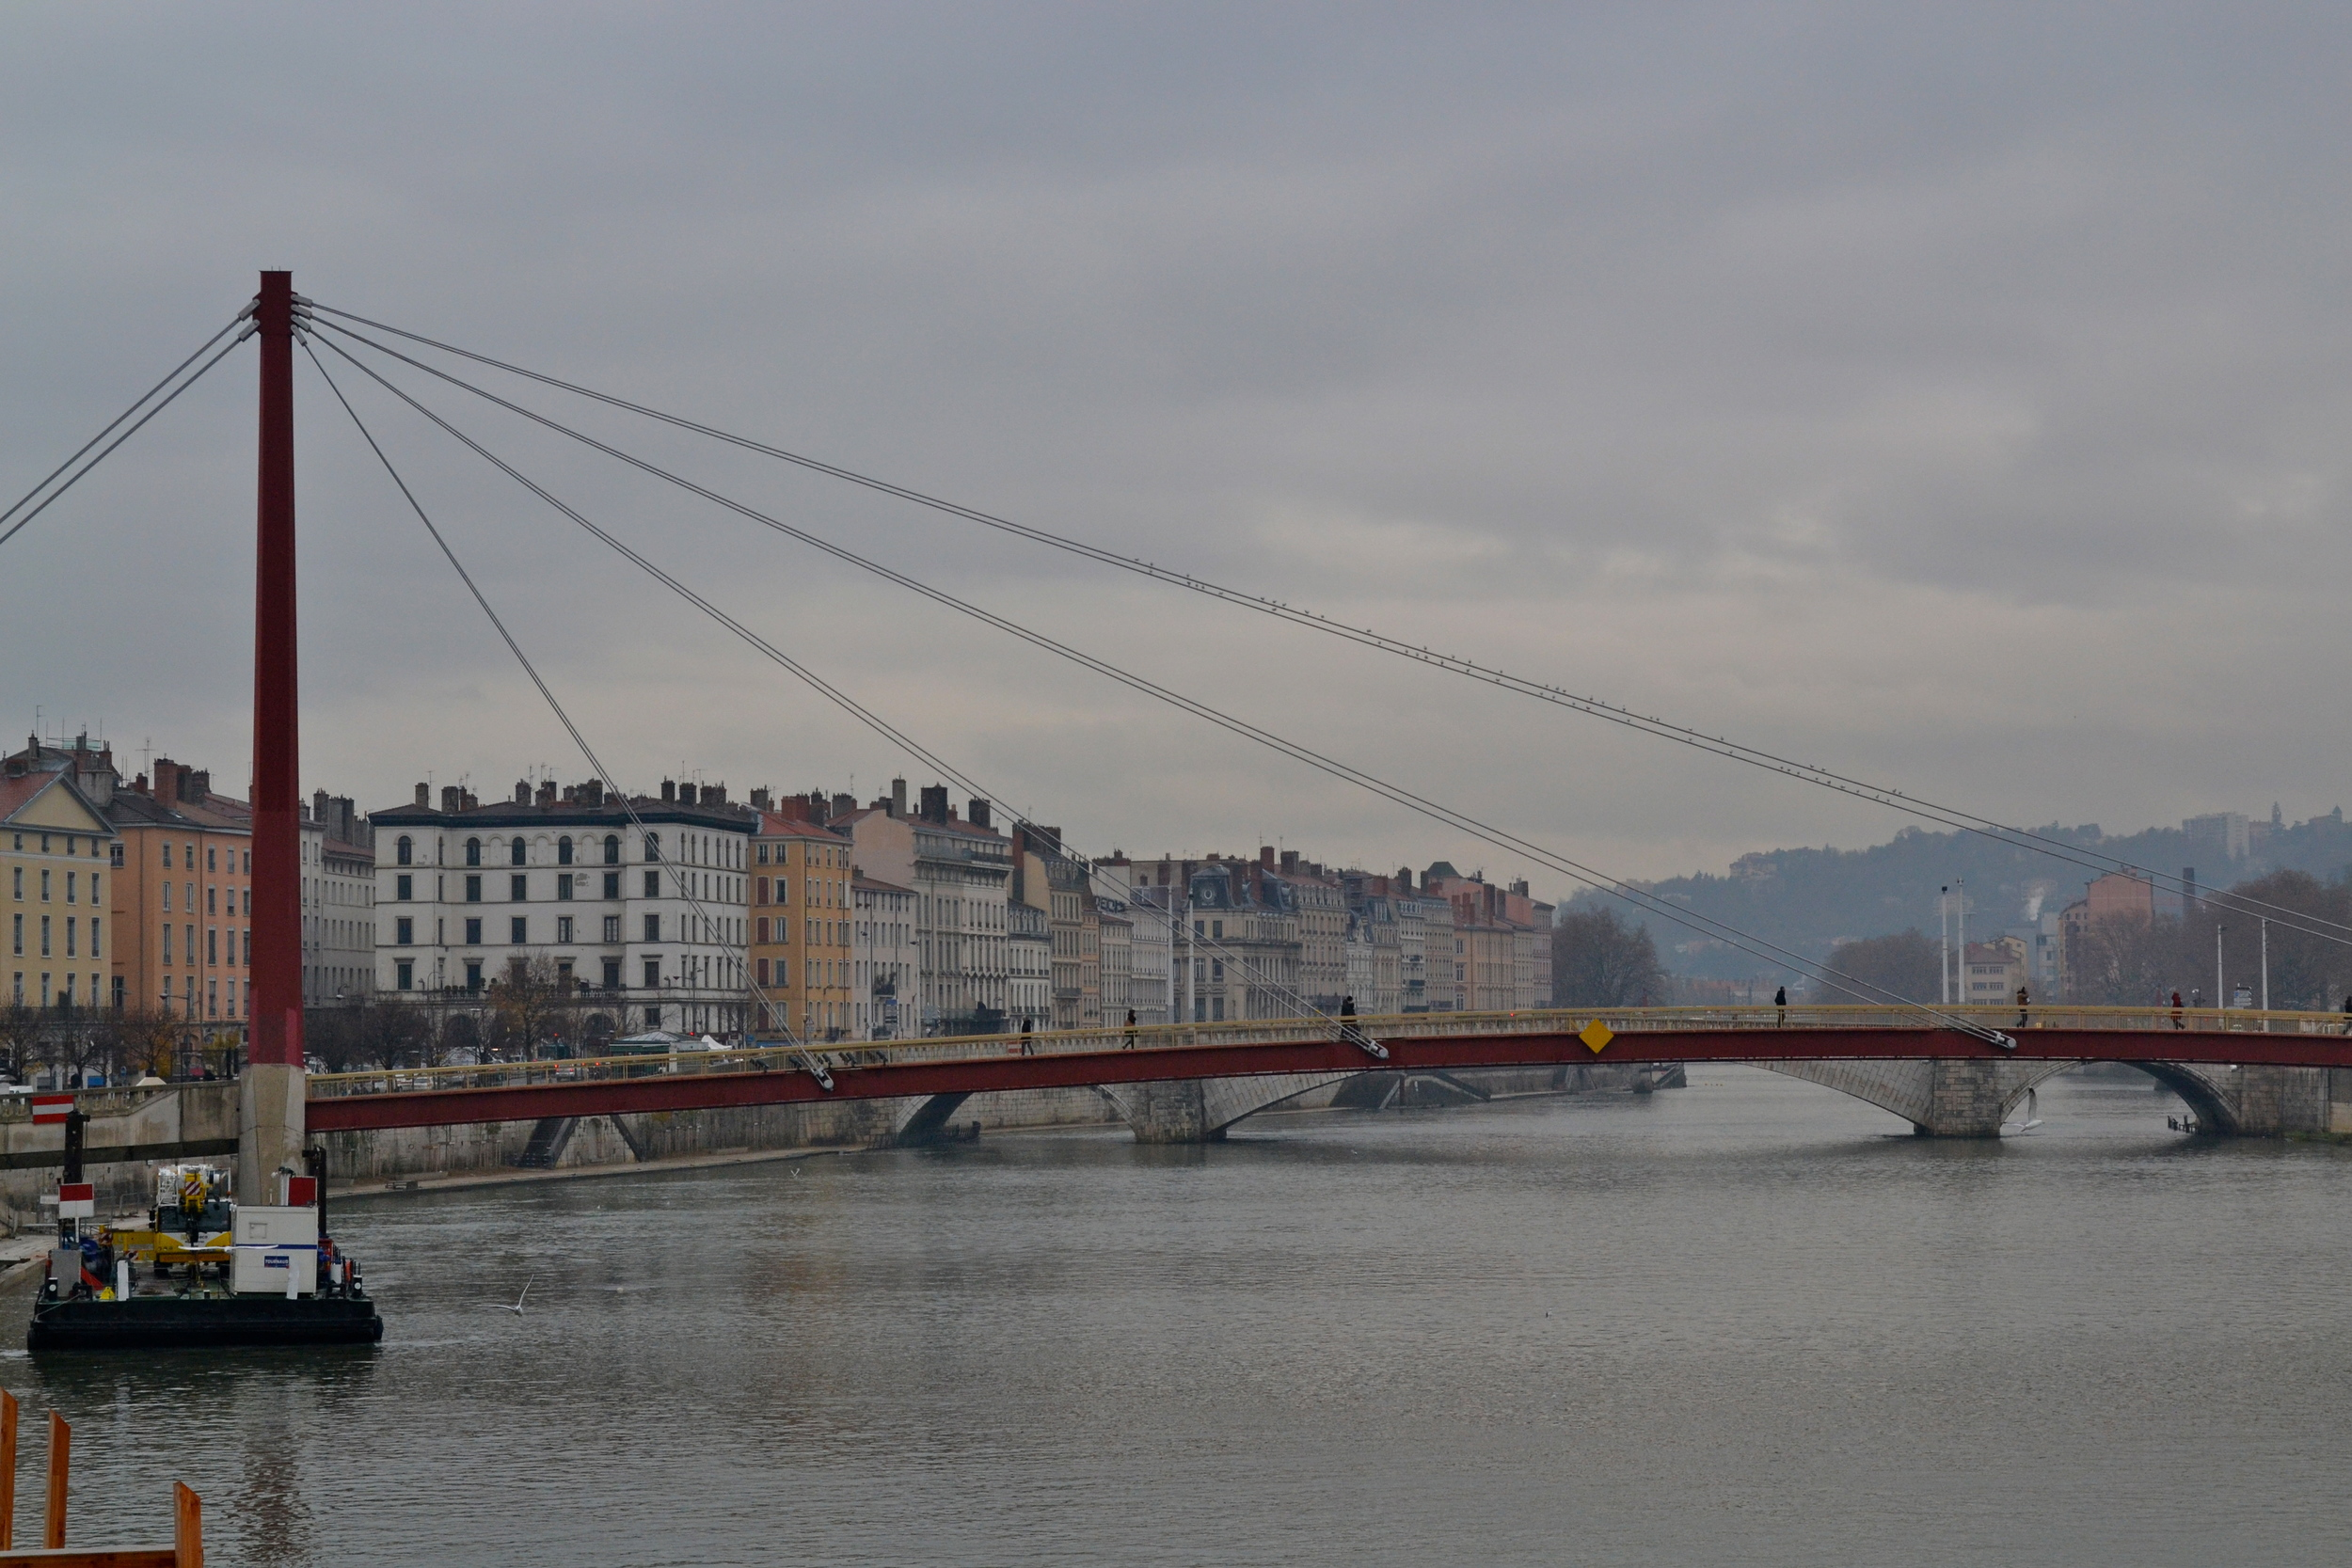 Looking over the Saône on a rainy day.